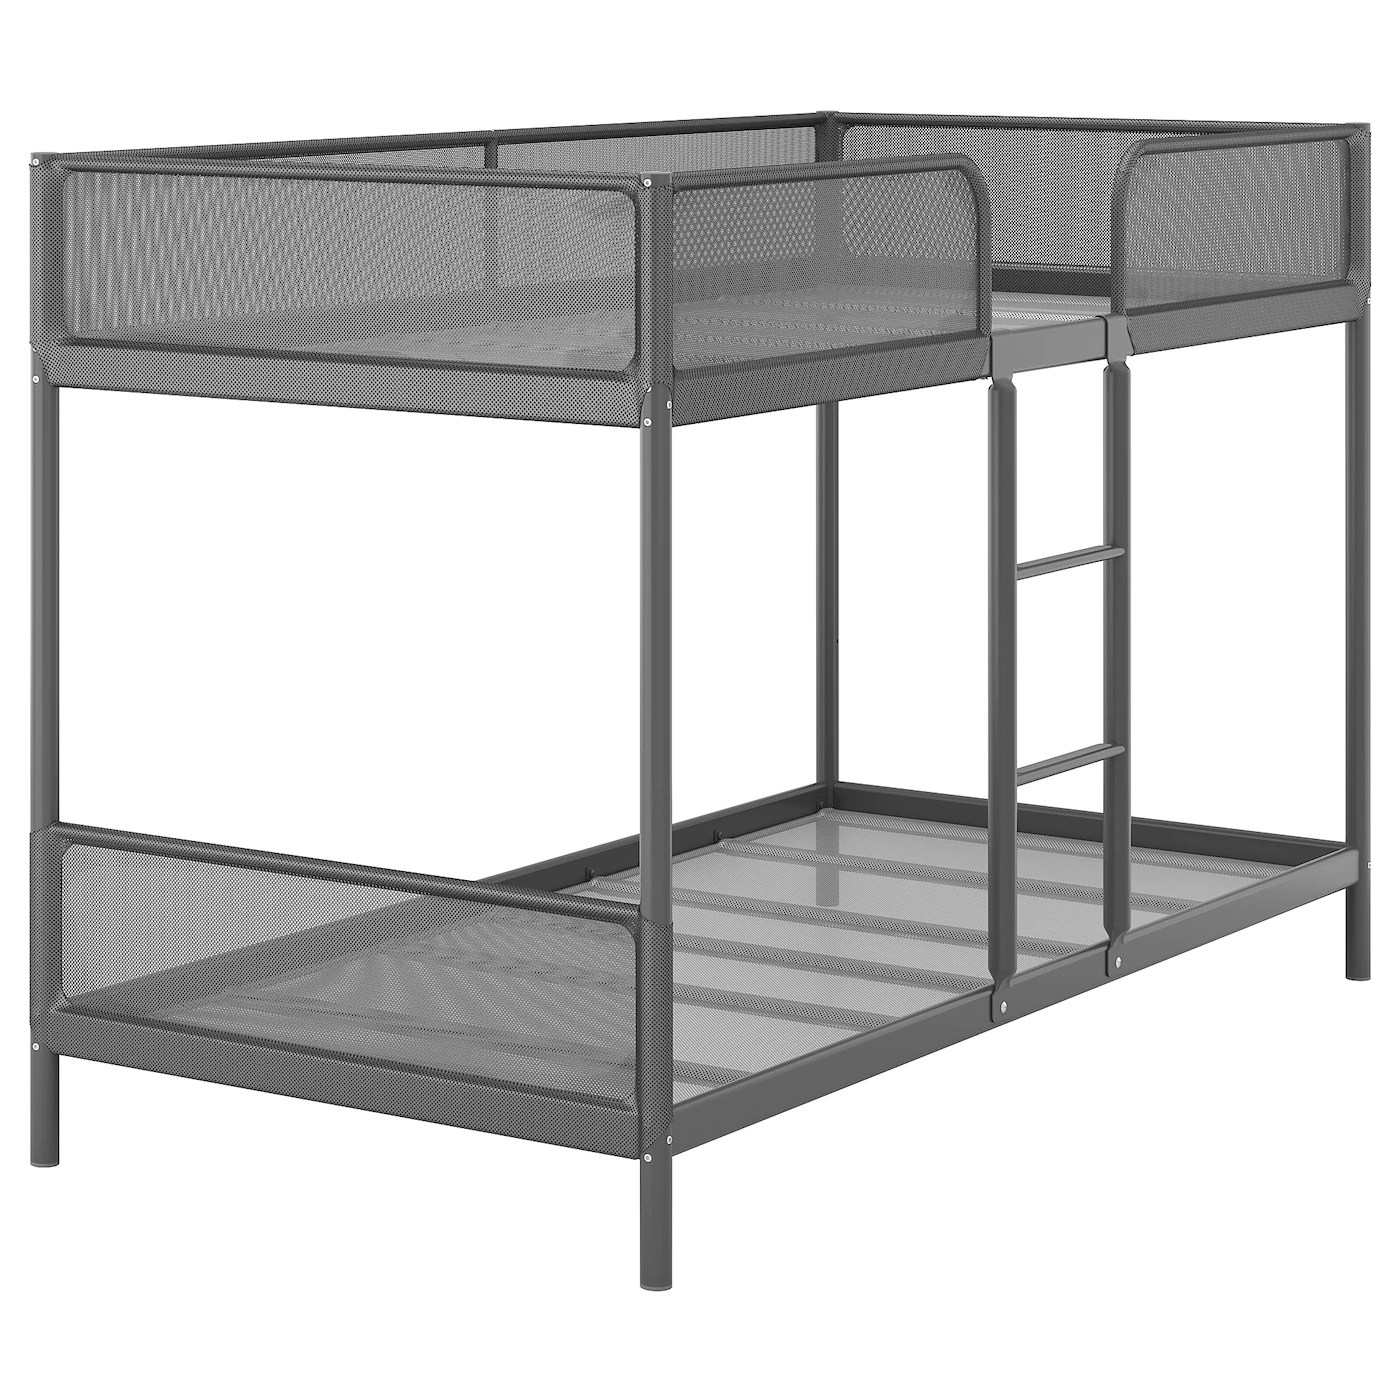 Tuffing Structure Lits Superposes Gris Fonce 90x200 Cm Ikea